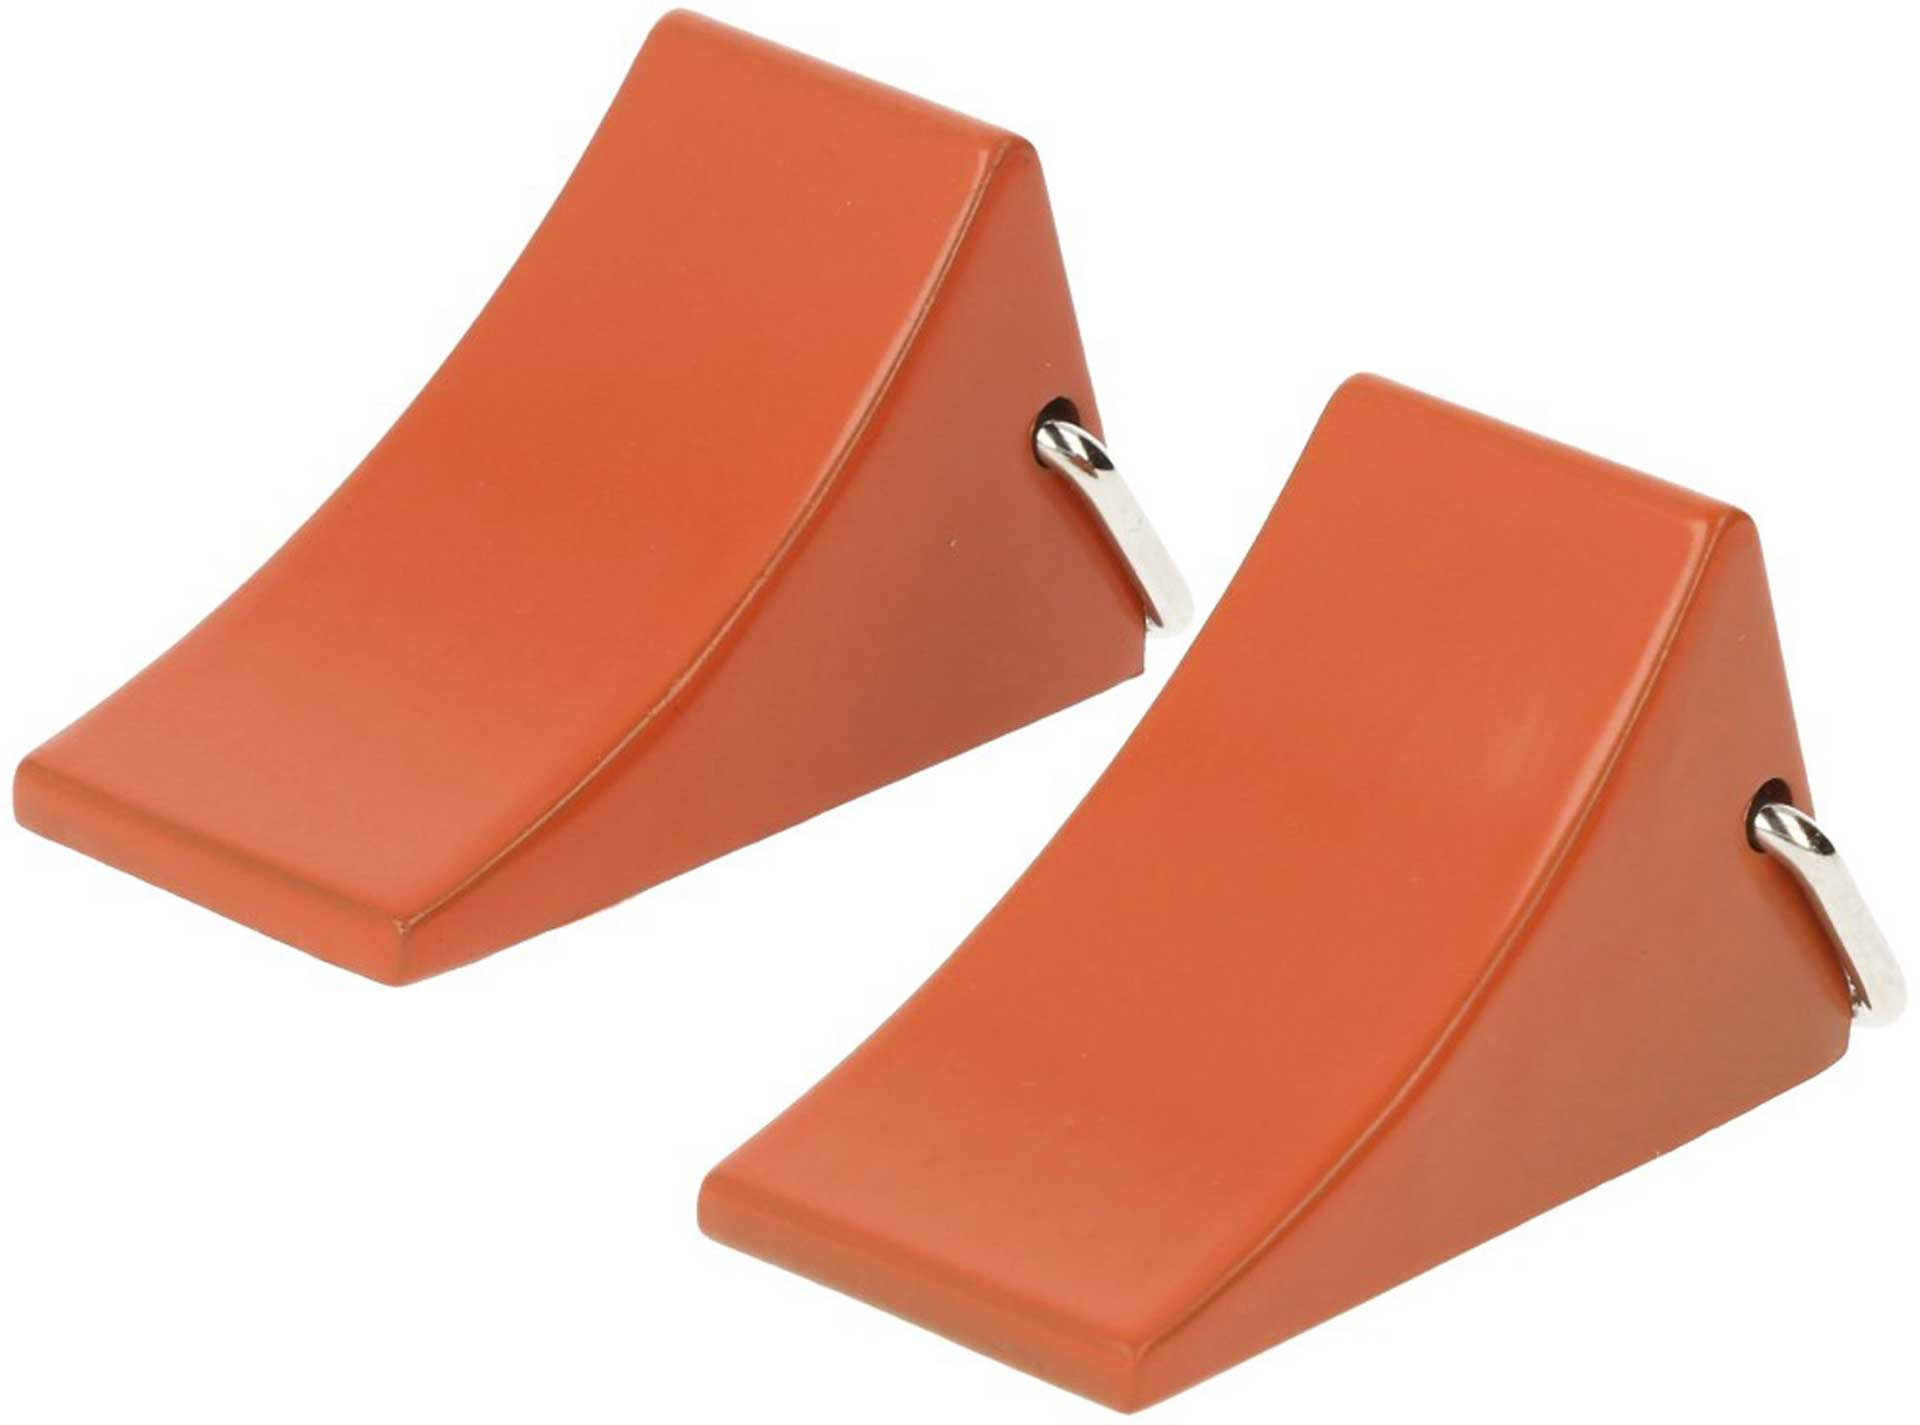 ROBITRONIC Chocks Fuse Orange (2 pcs.) Drag Shoes Cast Iron